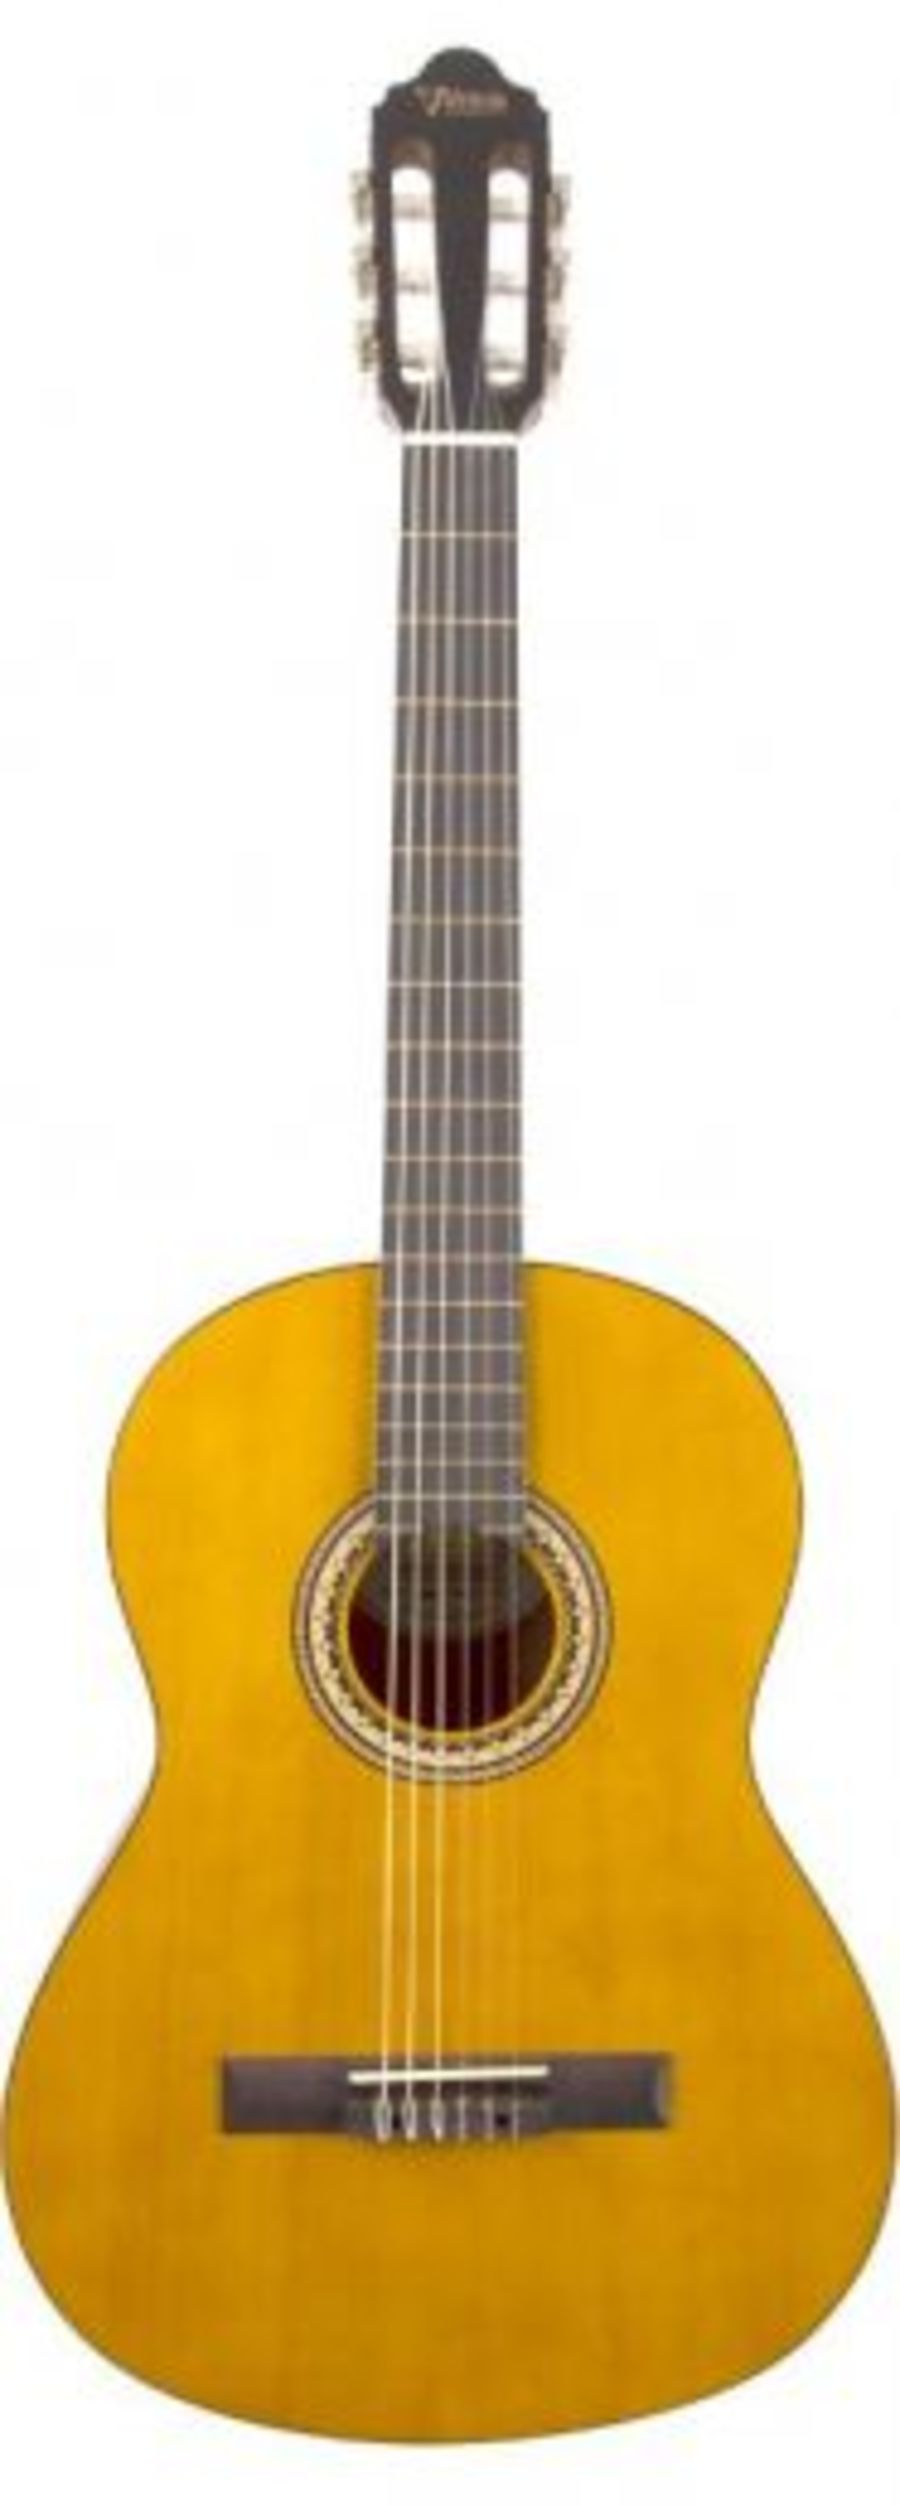 Valencia 200 Series Student Classical Guitar